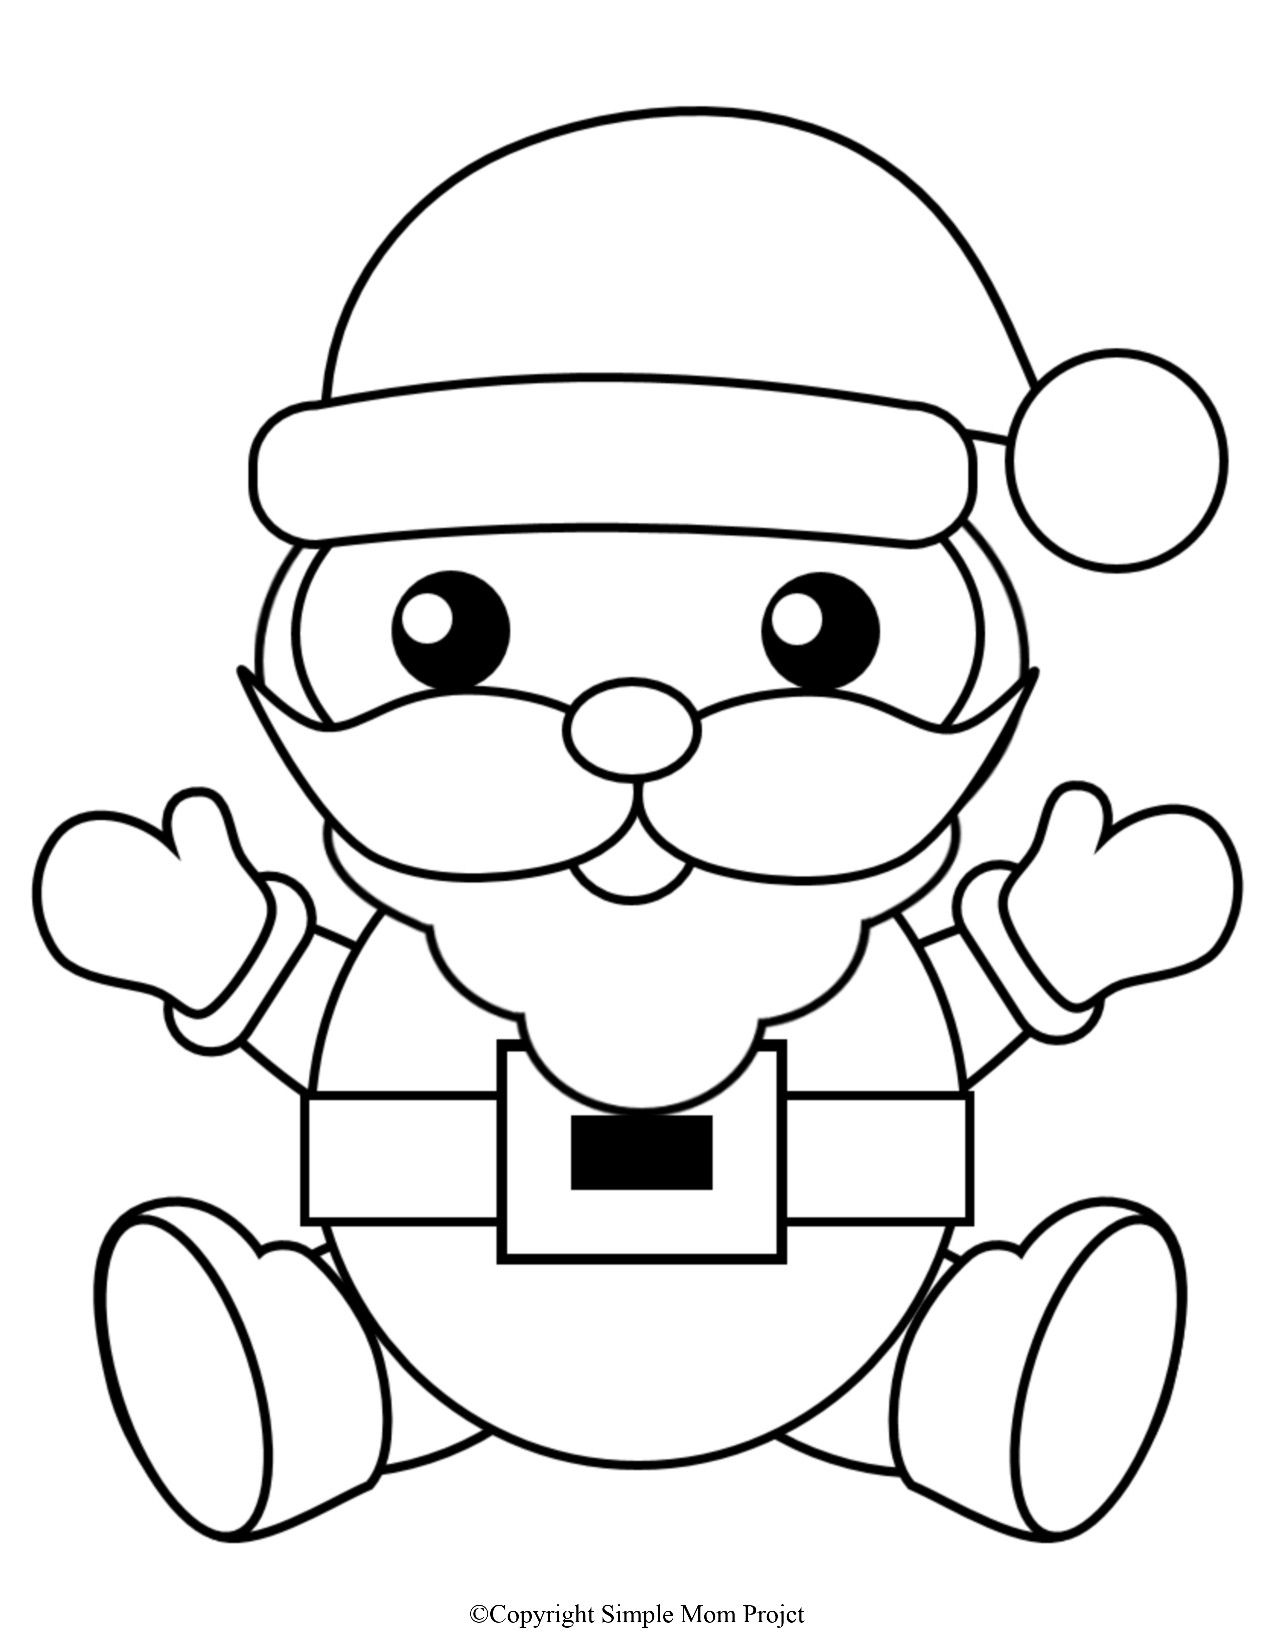 Pin By Jane Boyce On Coloring Pages Christmas Coloring Sheets Free Christmas Coloring Pages Christmas Coloring Sheets For Kids